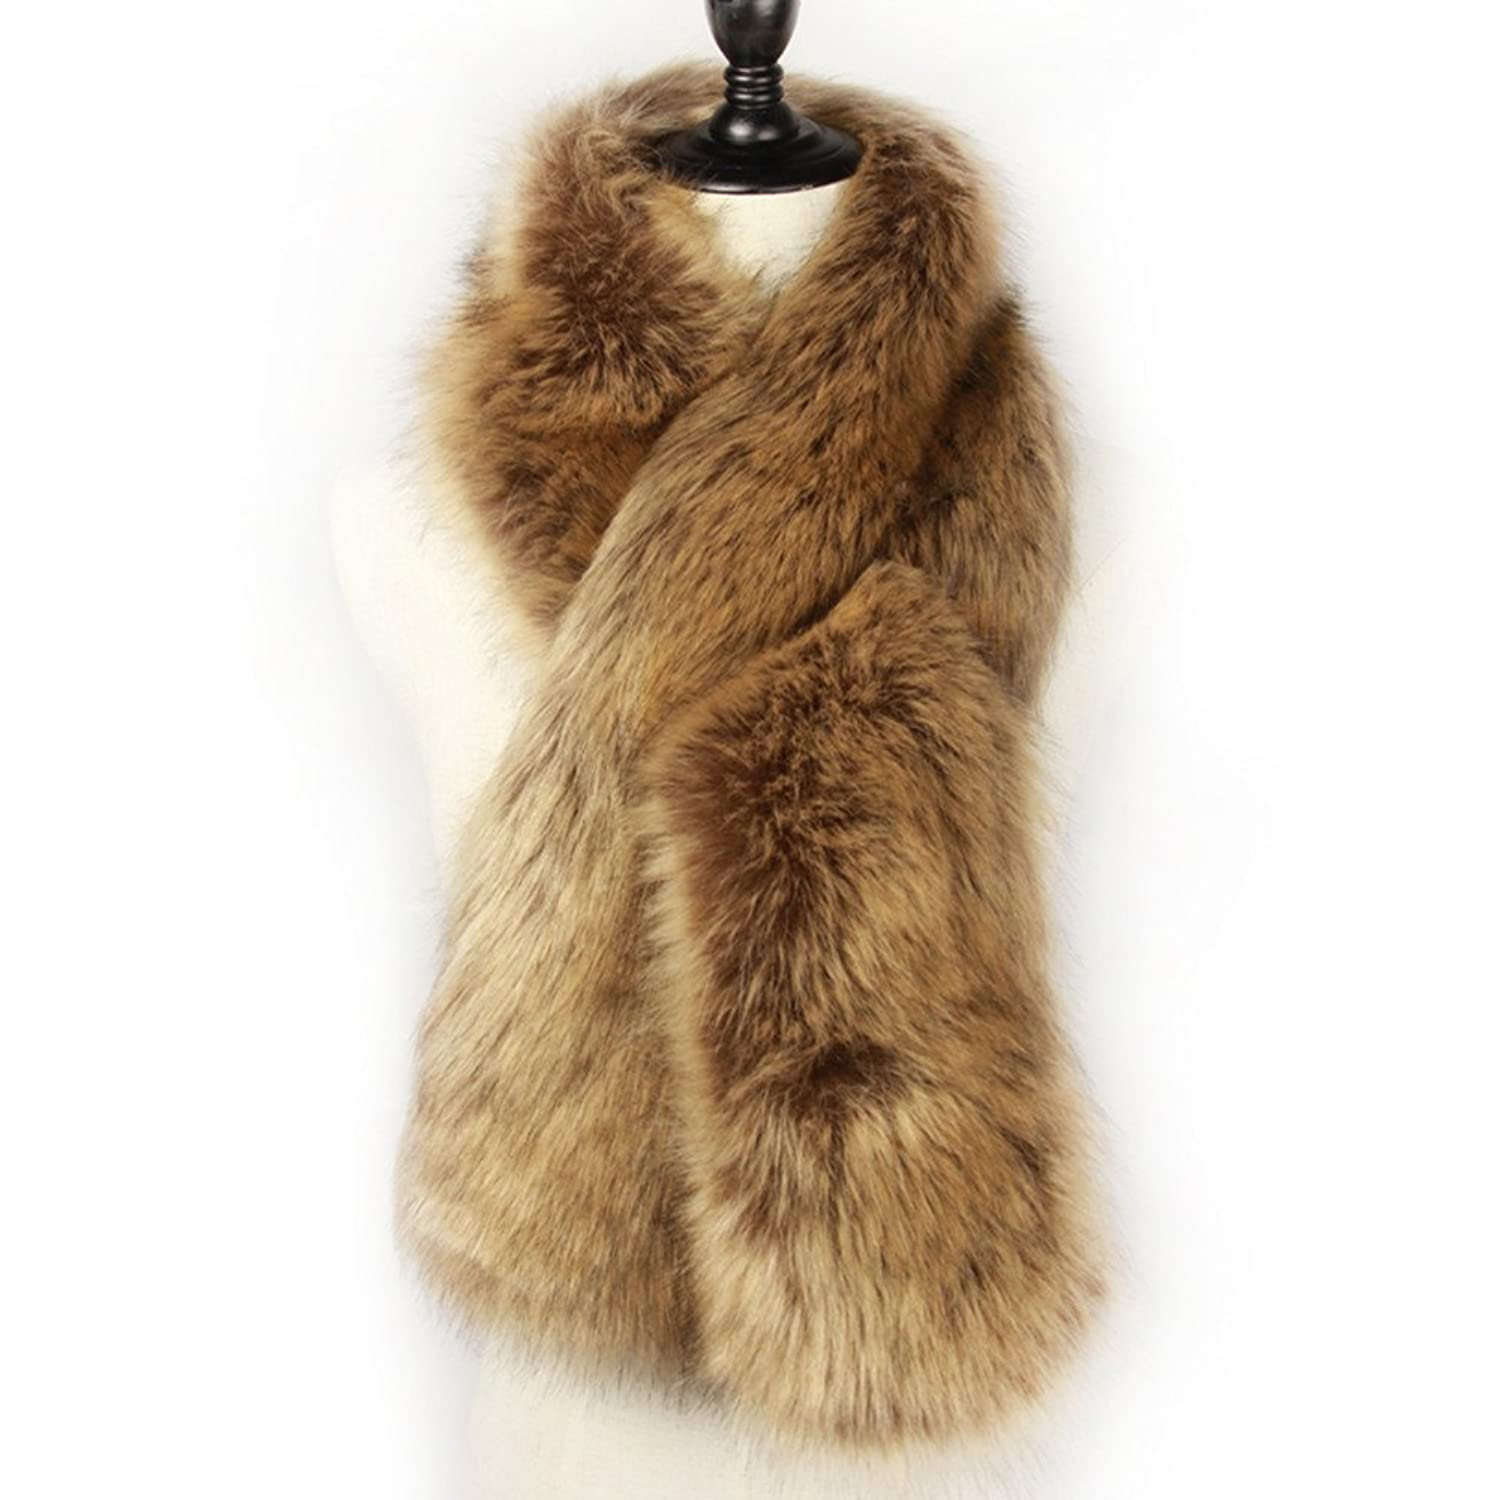 1920s Coats, Furs, Jackets and Capes History  Faux Fur Scarf Wrap Collar Shawl Shrug $15.99 AT vintagedancer.com